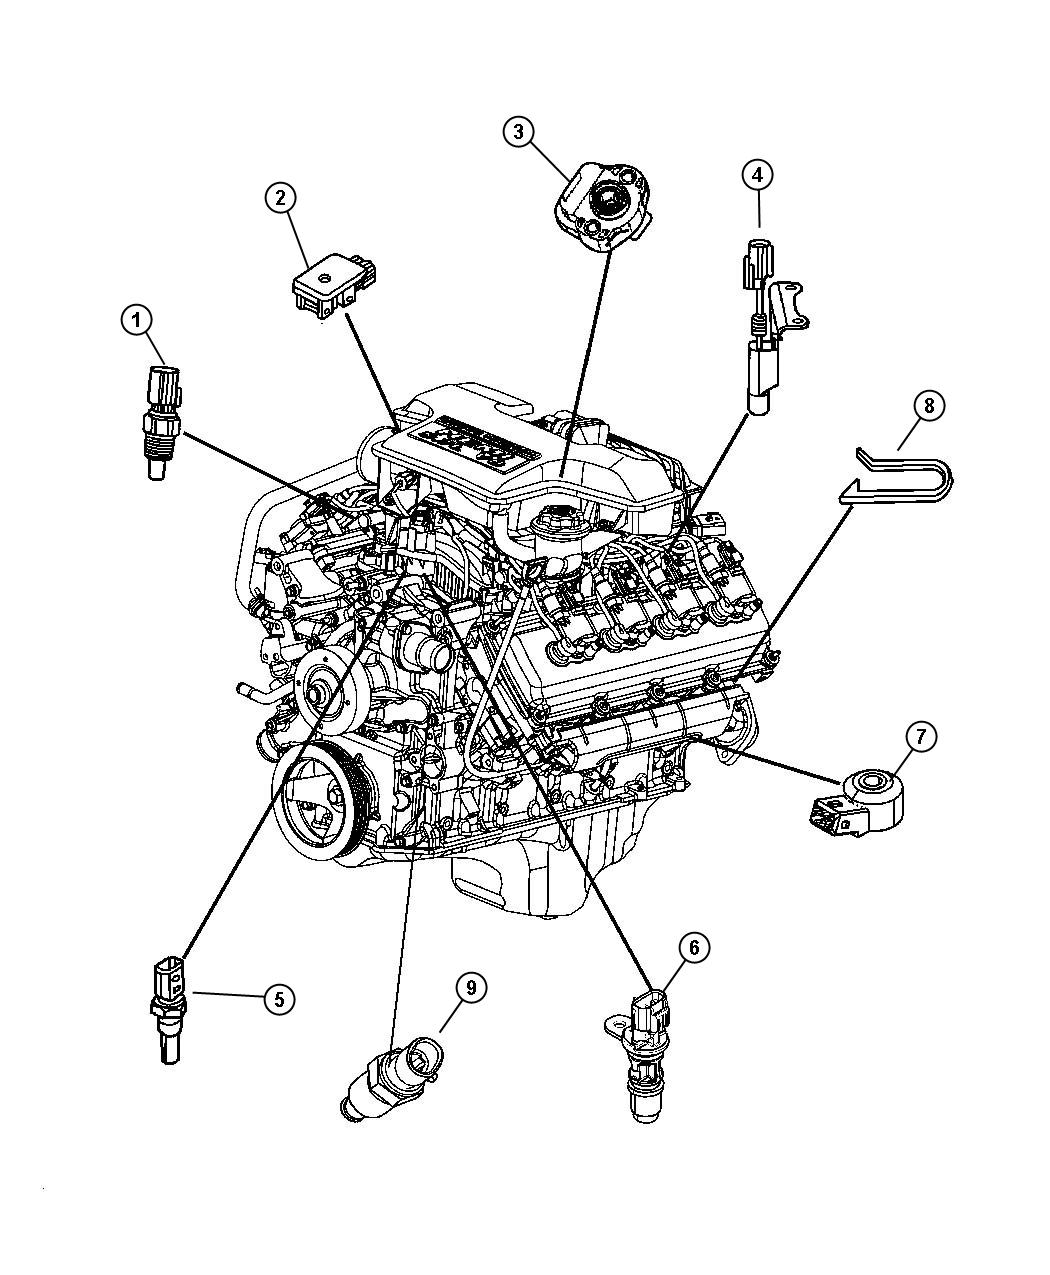 Dodge Ram Wiring Harness Diagram Database